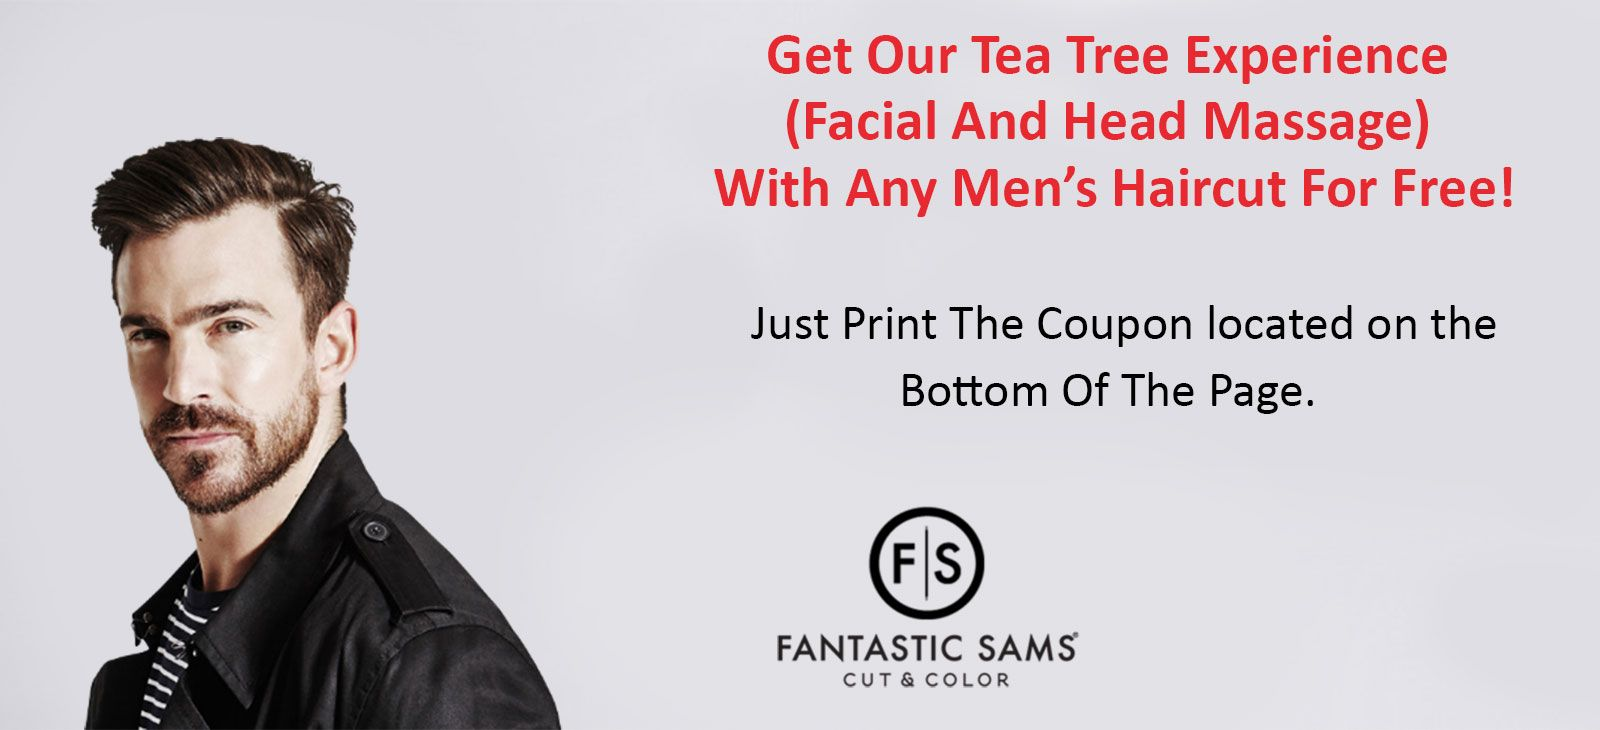 Tea Tree Experience Coupon For Fantastic Sams on Sahara